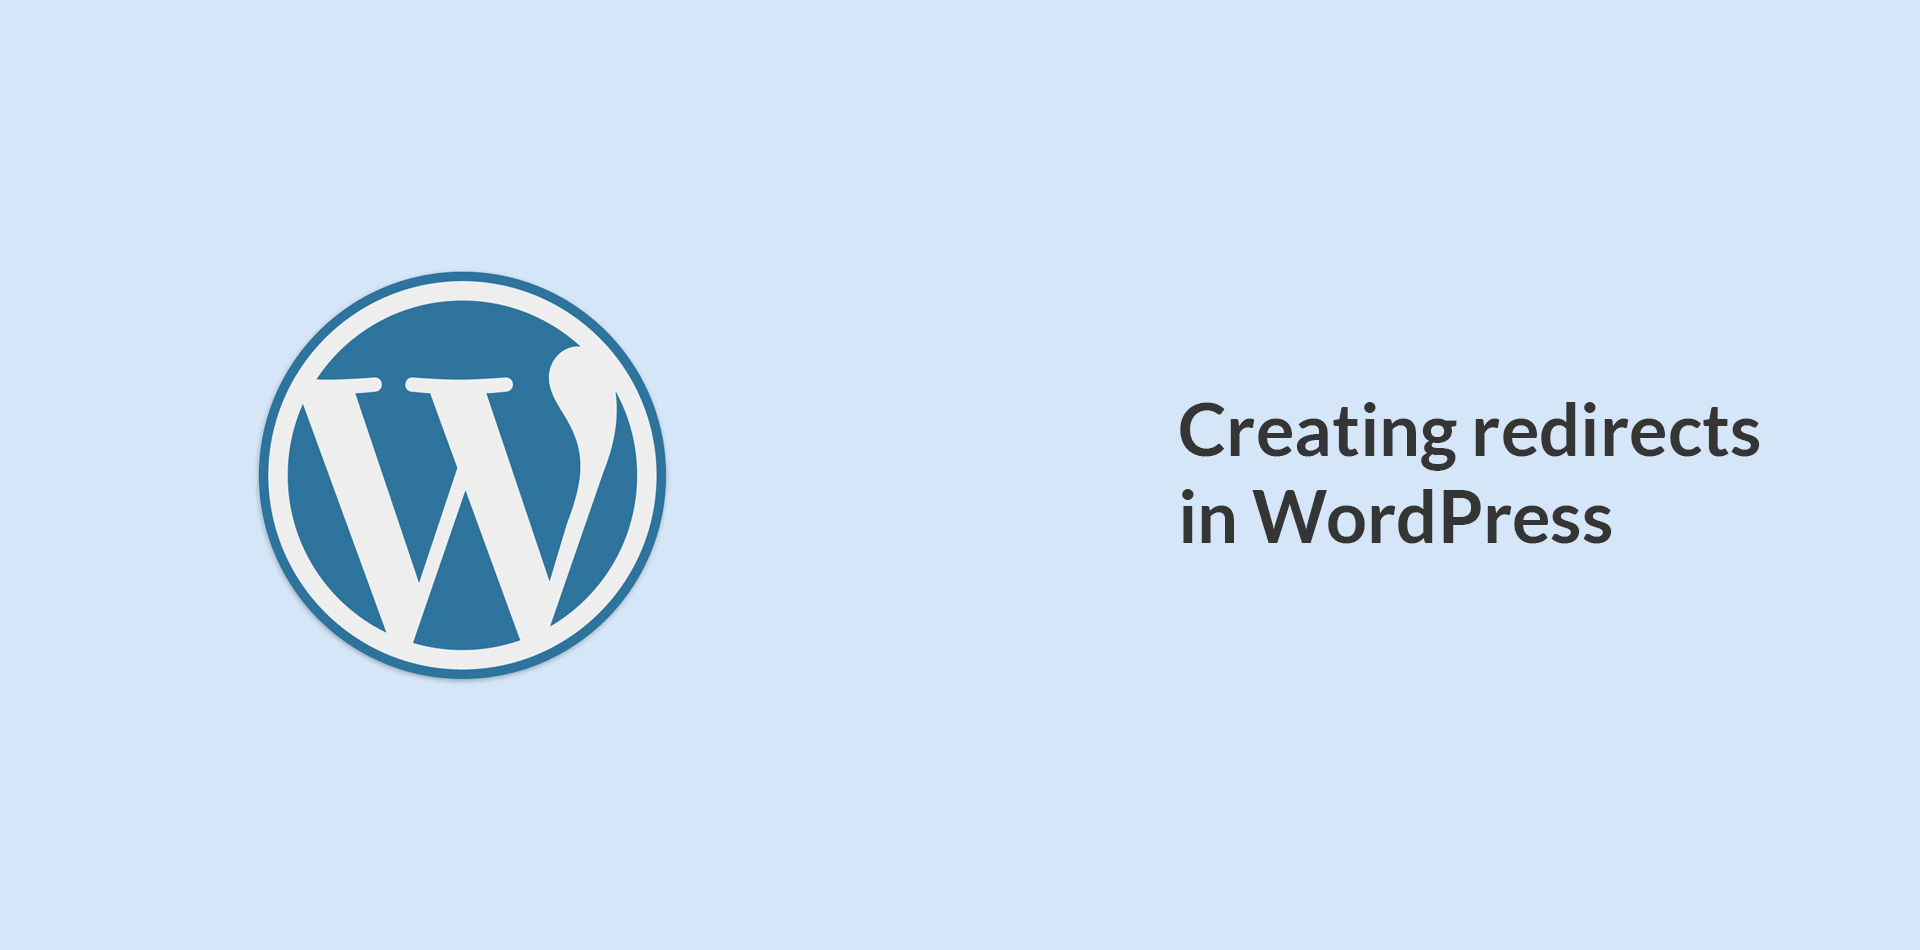 HOW TO CREATE REDIRECTIONS IN WORDPRESS